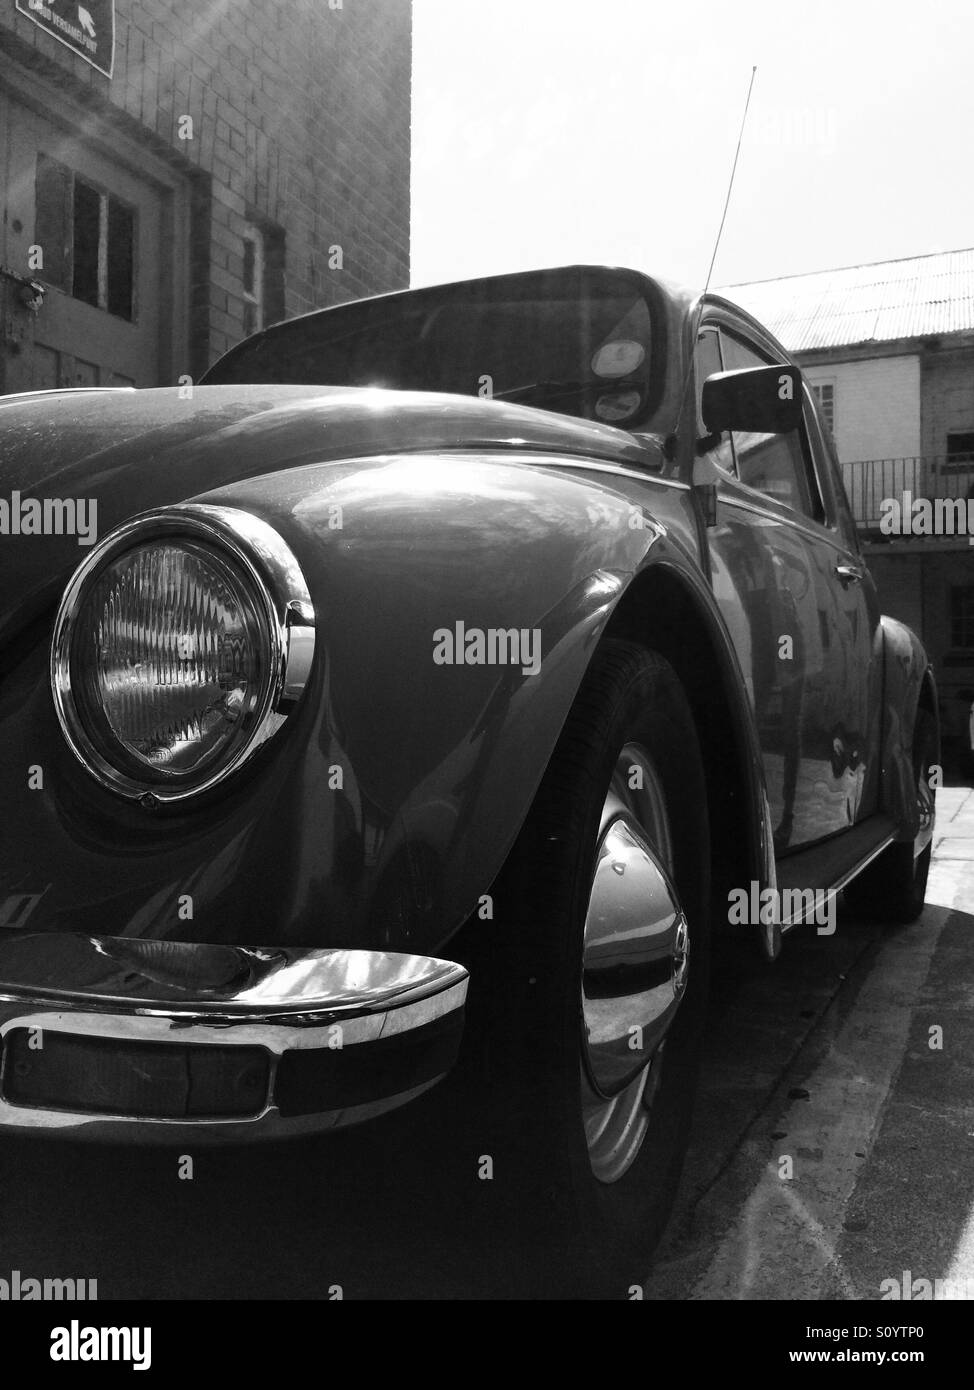 Black and white beetle - Stock Image